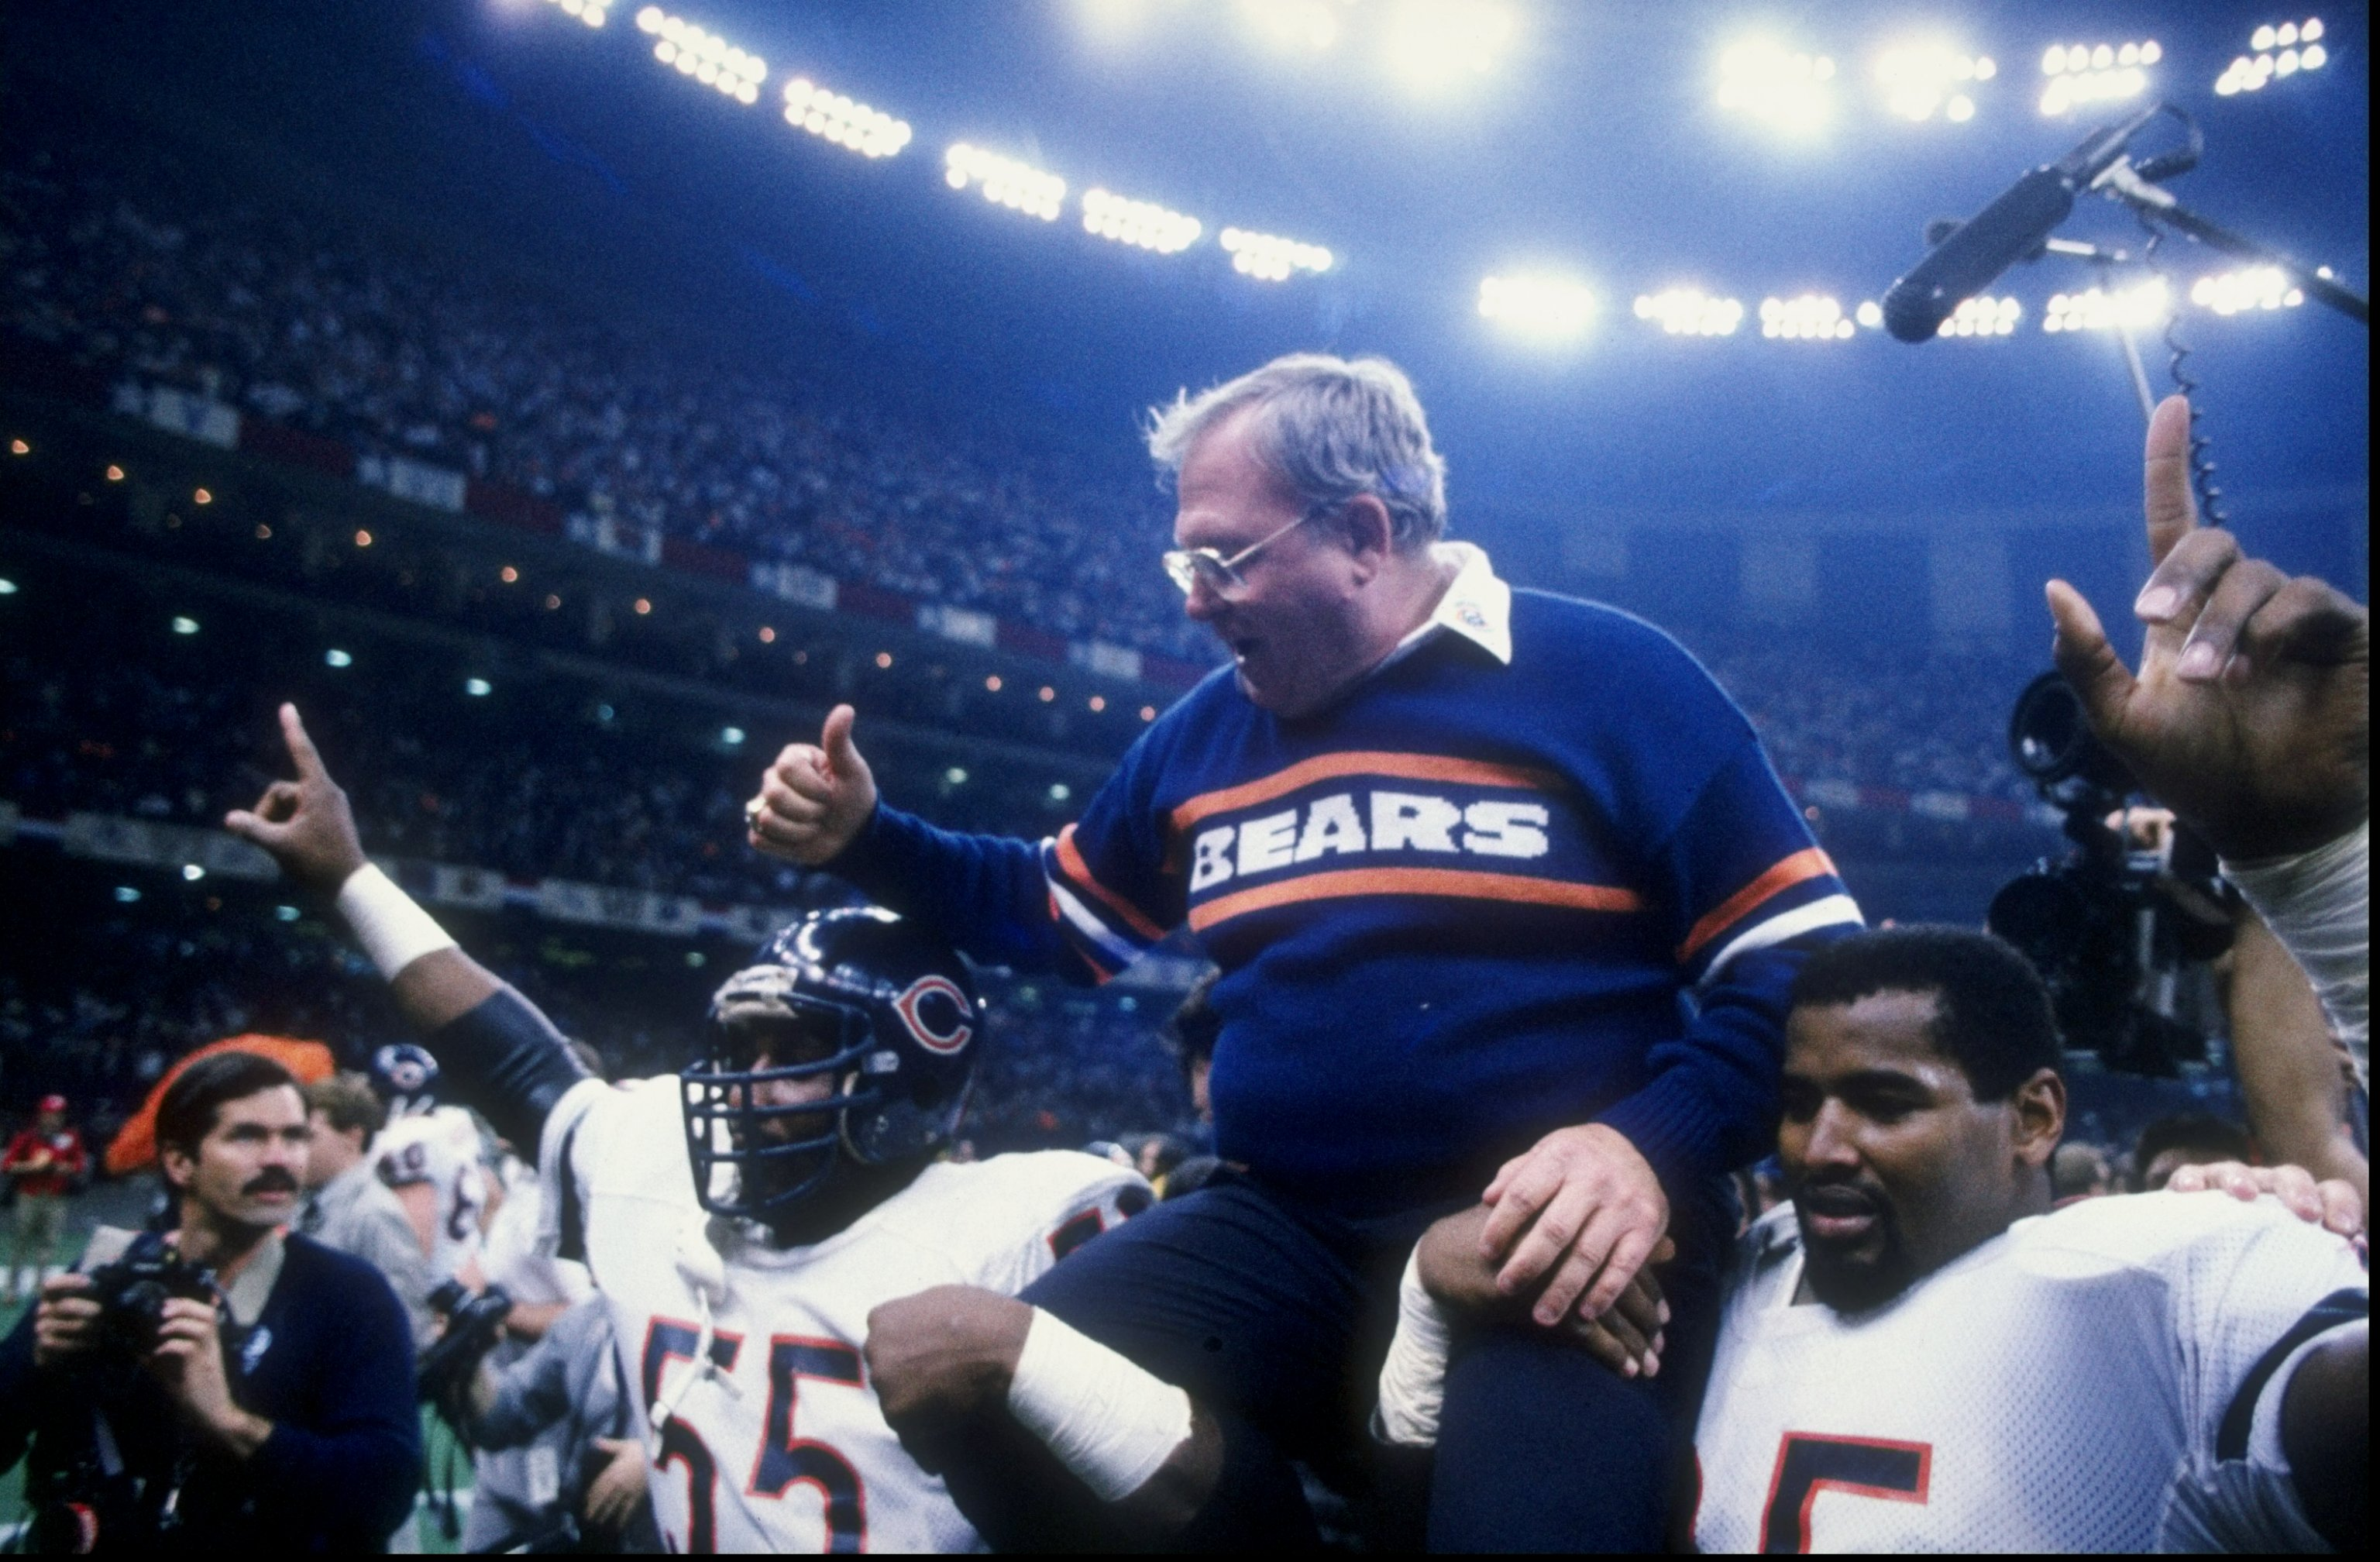 26 Jan 1986: Defensive coach Buddy Ryan and defensive end Richard Dent of the Chicago Bears celebrate after the Super Bowl XX game against the New England Patriots at the Louisiana Superdome in New Orleans, Louisiana. The Bears defeated the Patriots 46-10